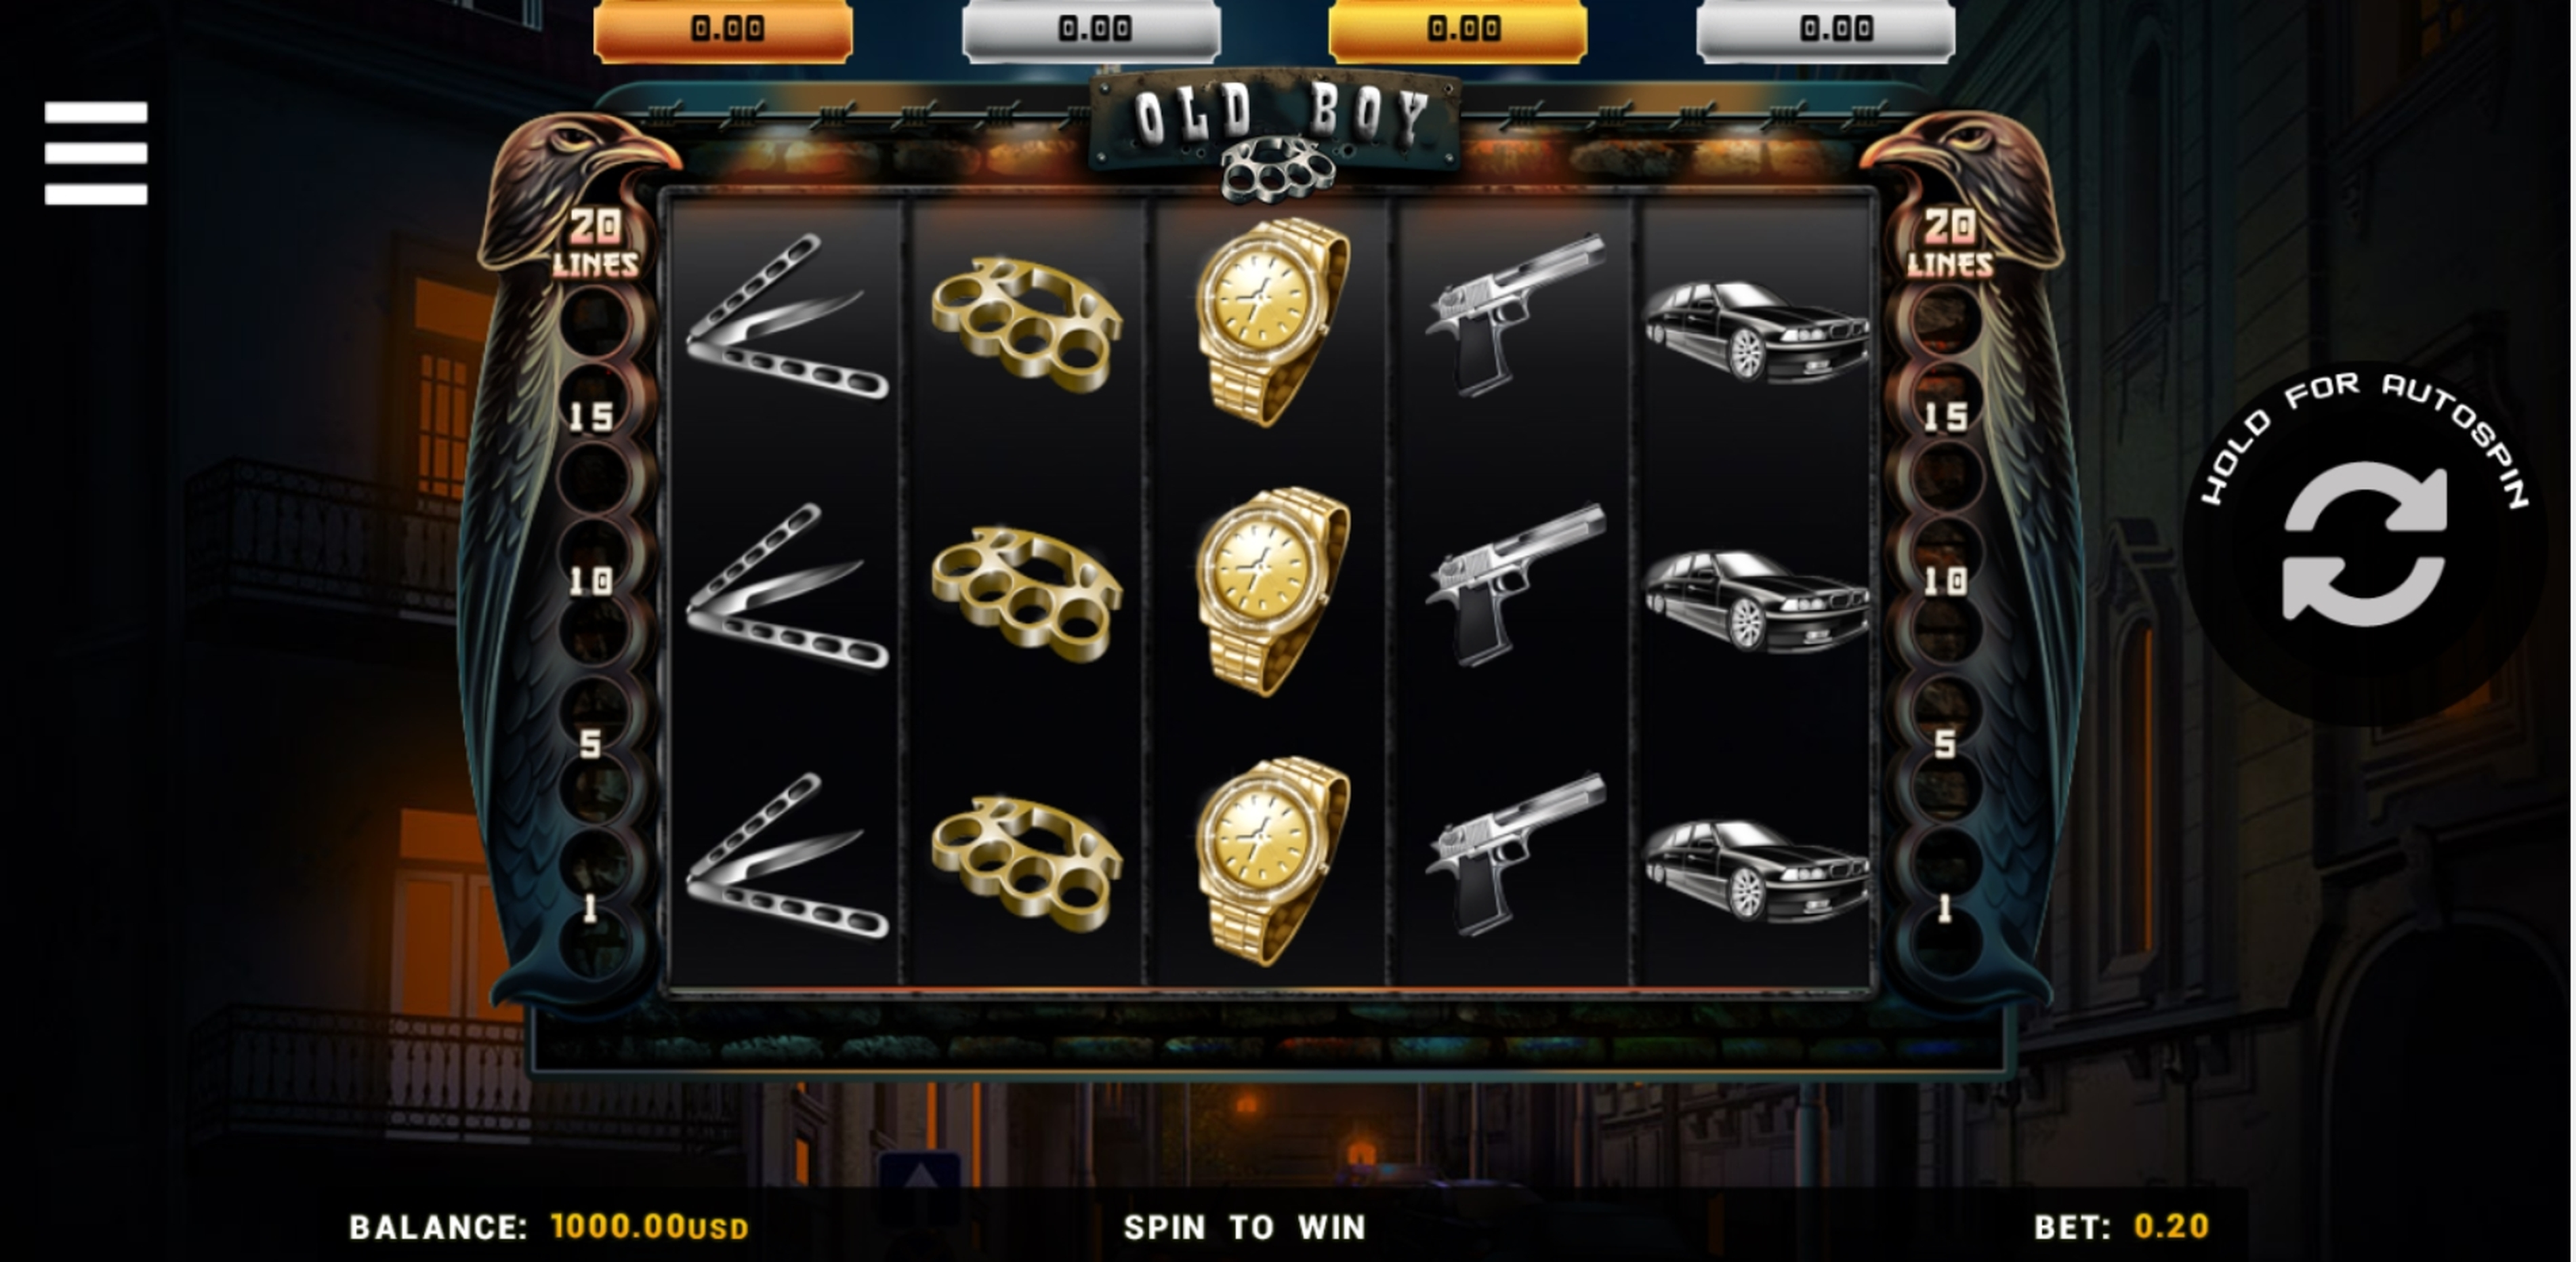 Reels in Old Boy Slot Game by Betsense